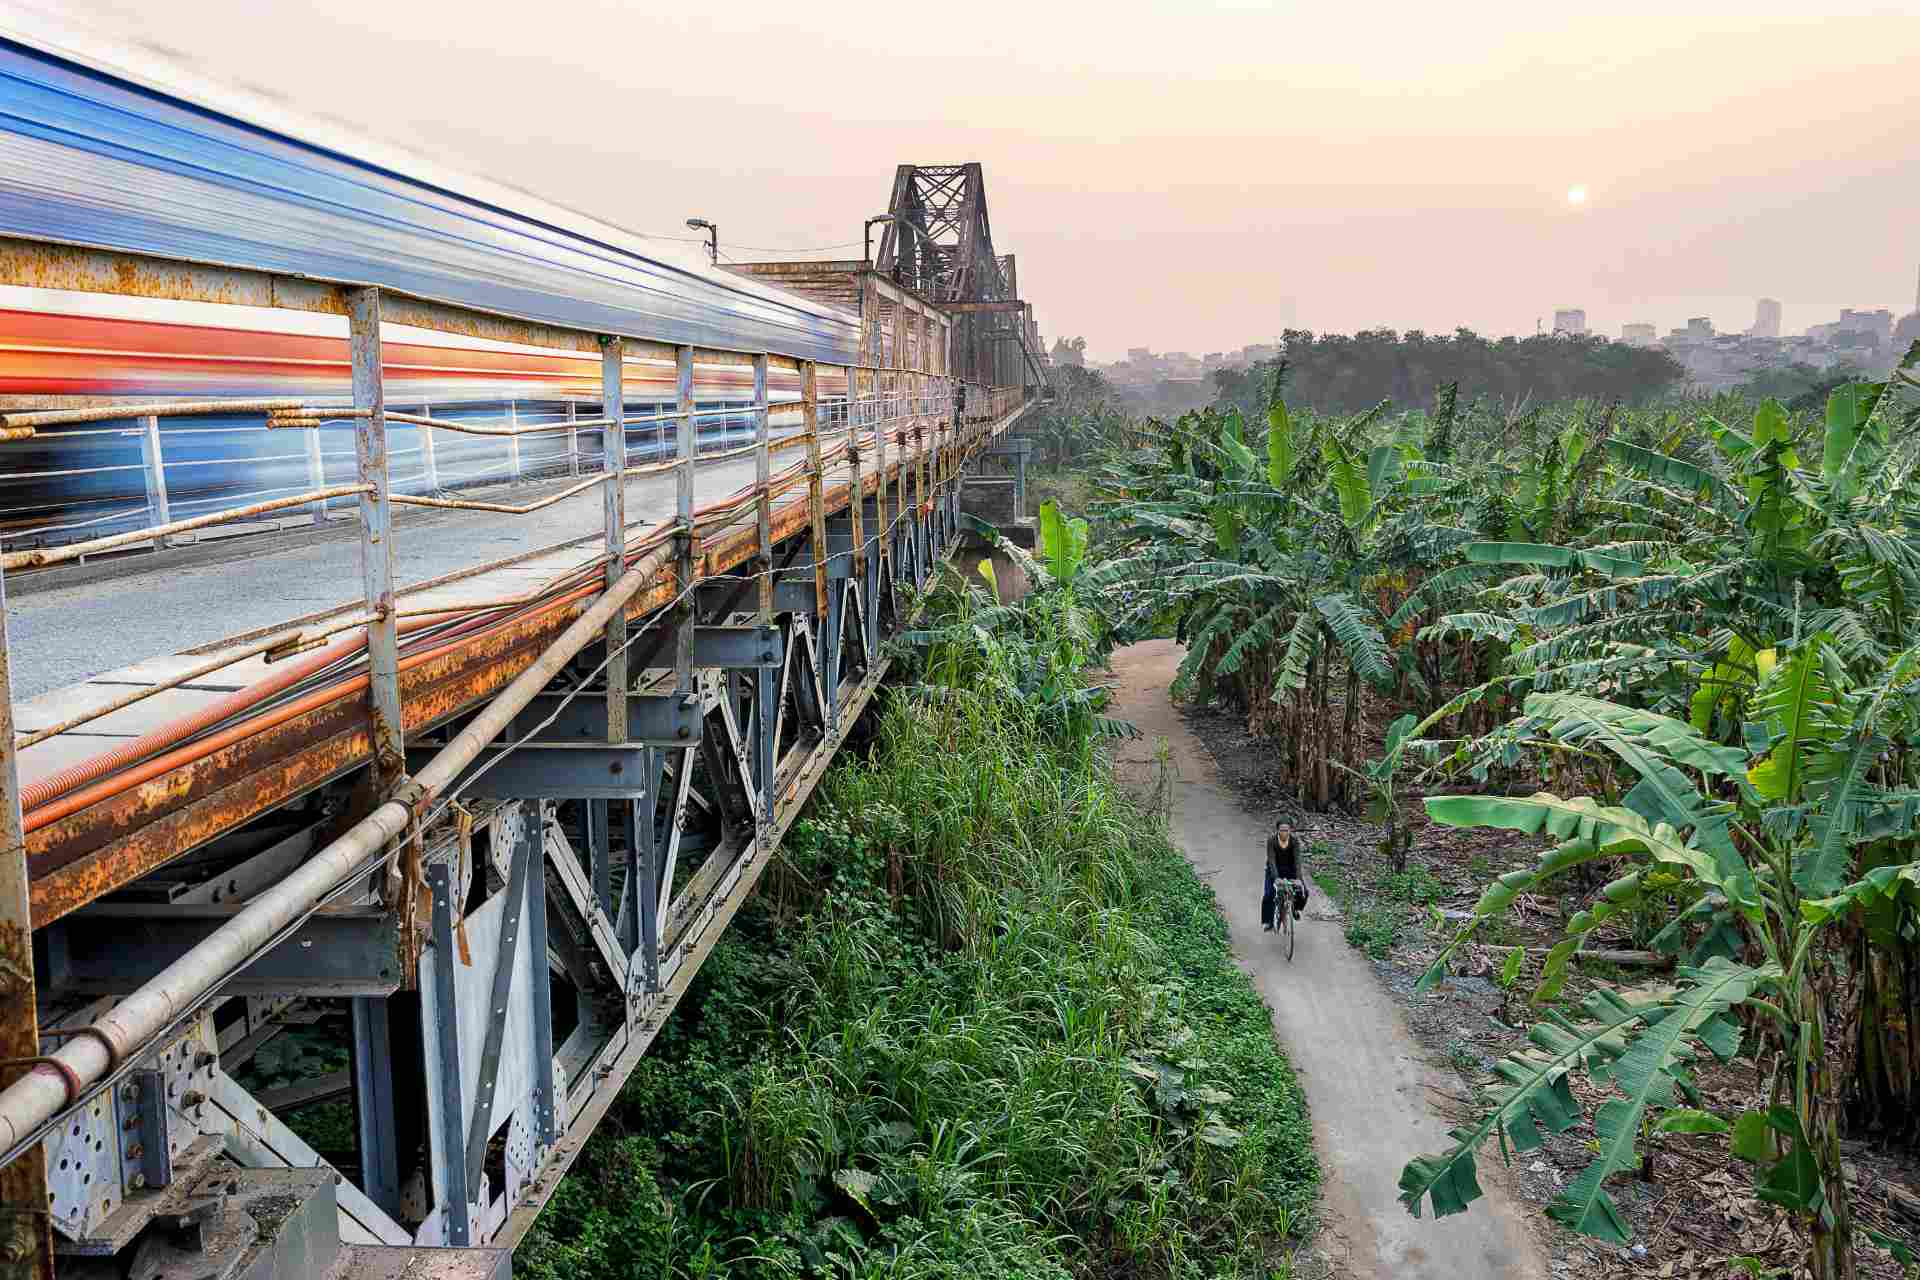 Getting from Hoi An to Hanoi by Train